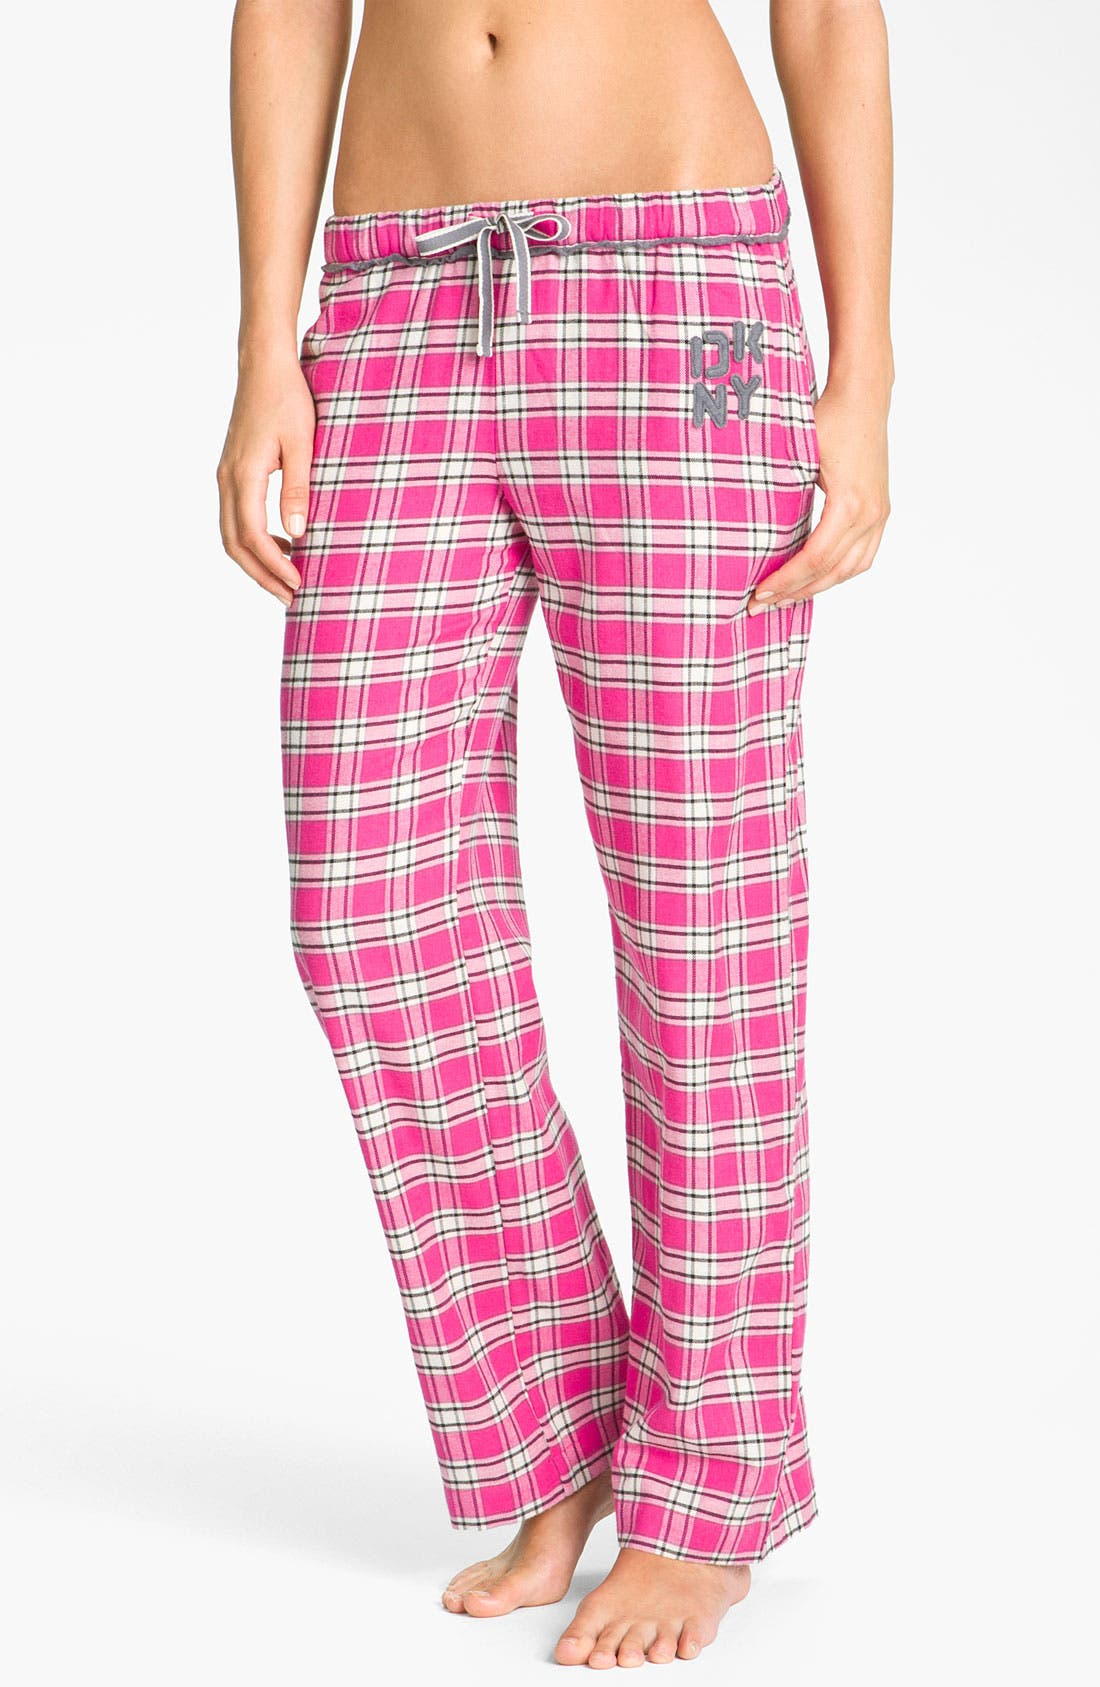 Alternate Image 1 Selected - DKNY 'Pattern Play' Flannel Pajama Pants